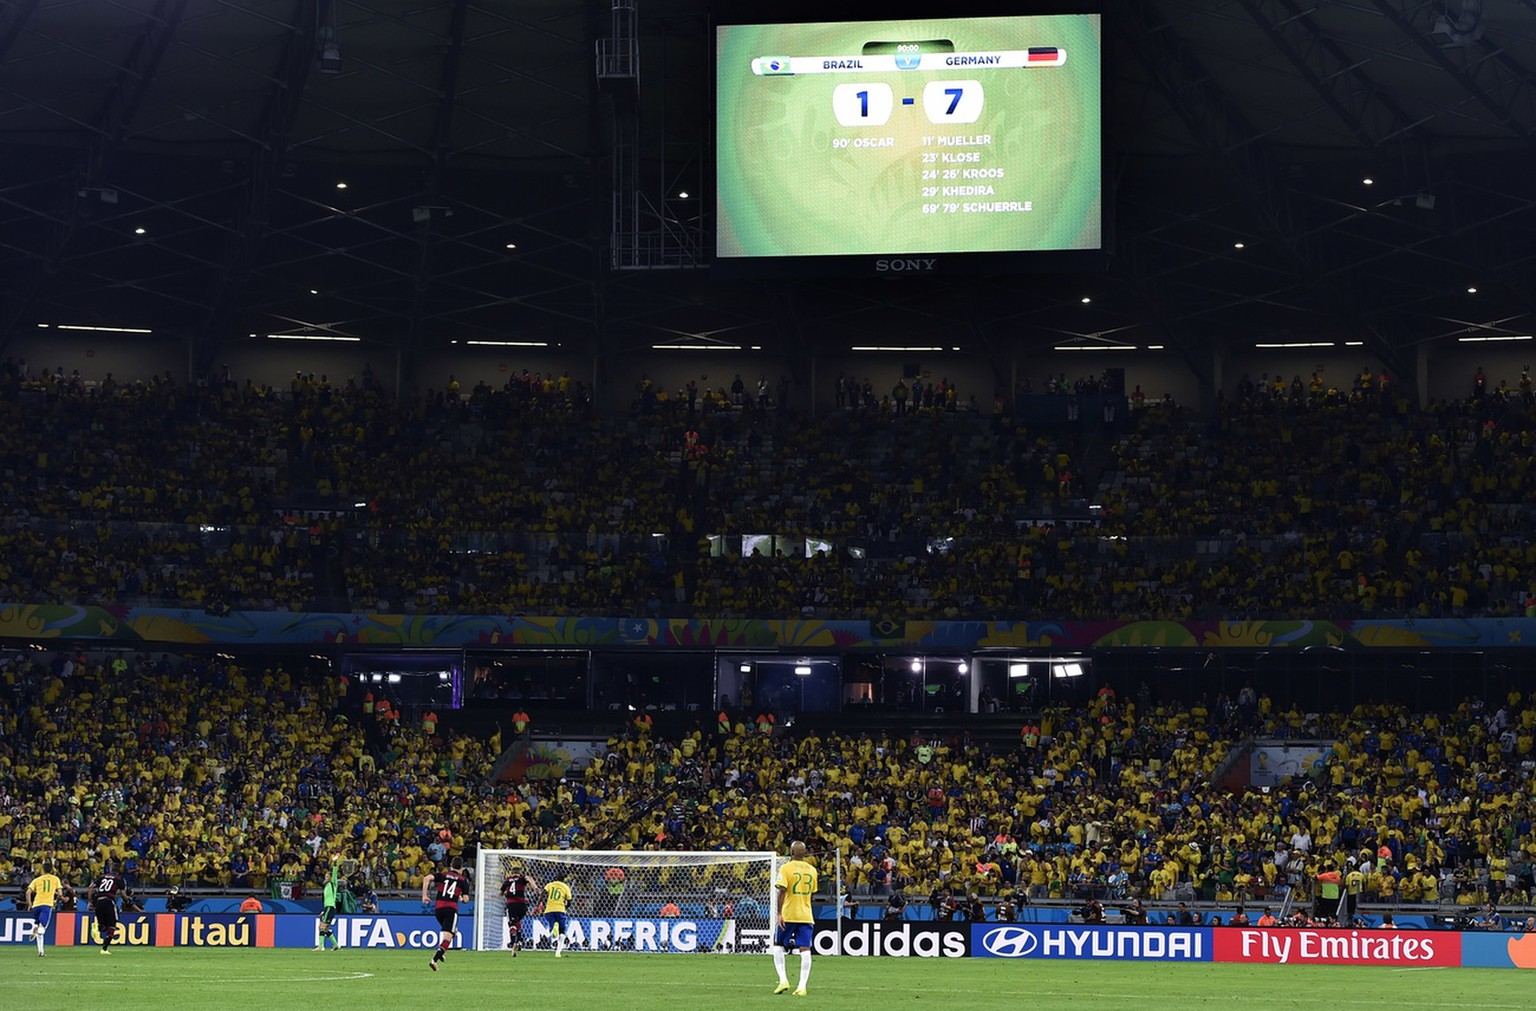 The scoreboard shows the final score at 7-1 during the World Cup semifinal soccer match between Brazil and Germany at the Mineirao Stadium in Belo Horizonte, Brazil, Tuesday, July 8, 2014. (AP Photo/Martin Meissner)